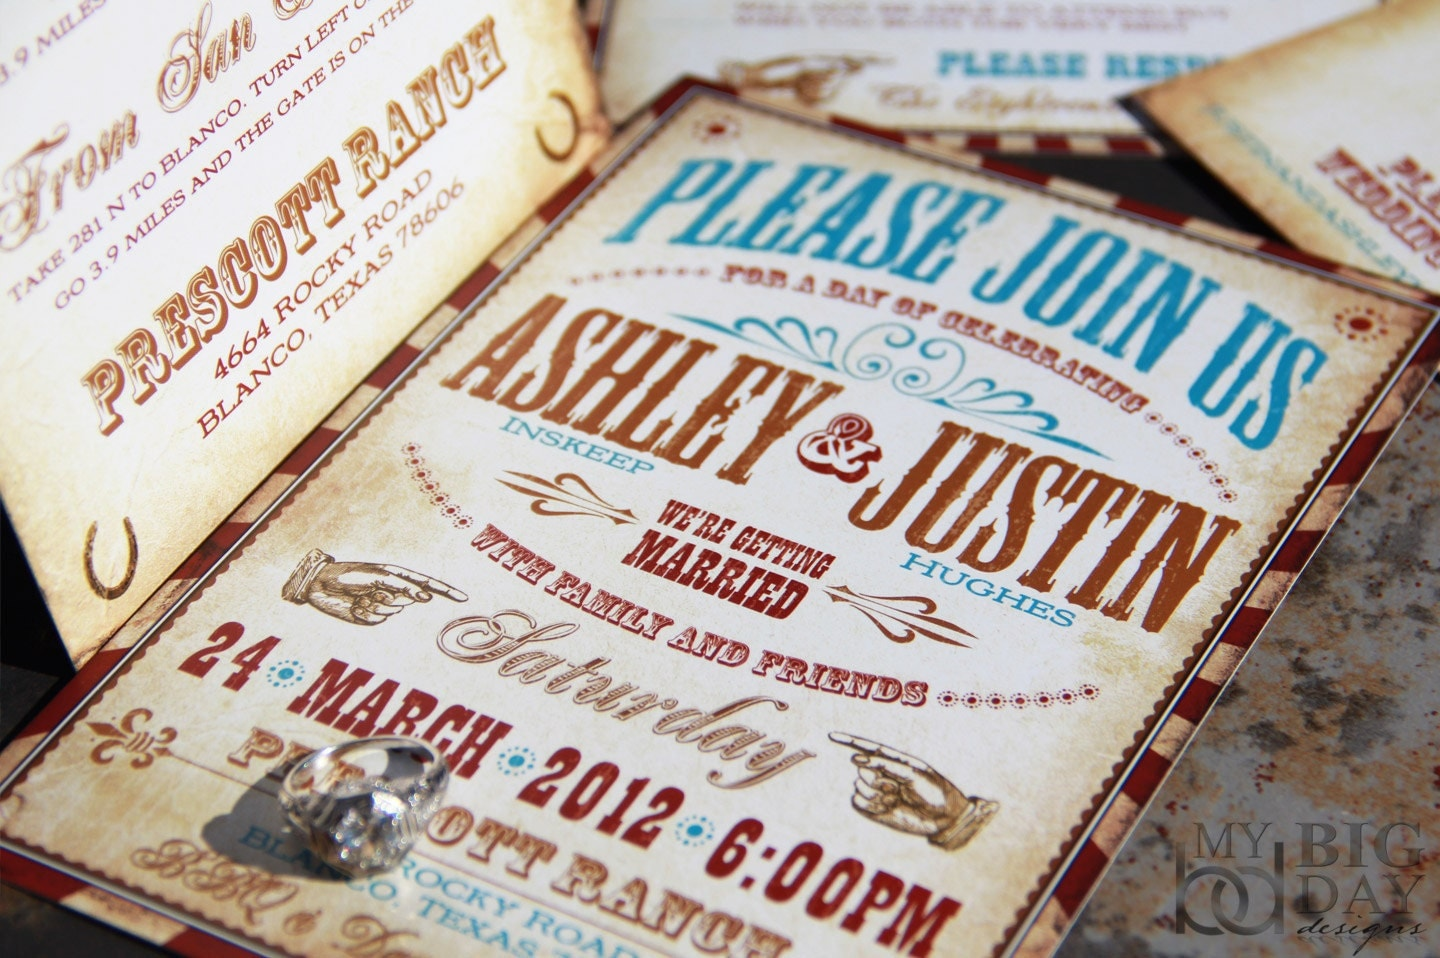 Western Wedding Invitation Wording: Vintage Western Wedding Invitation Set. Vaudeville Wedding